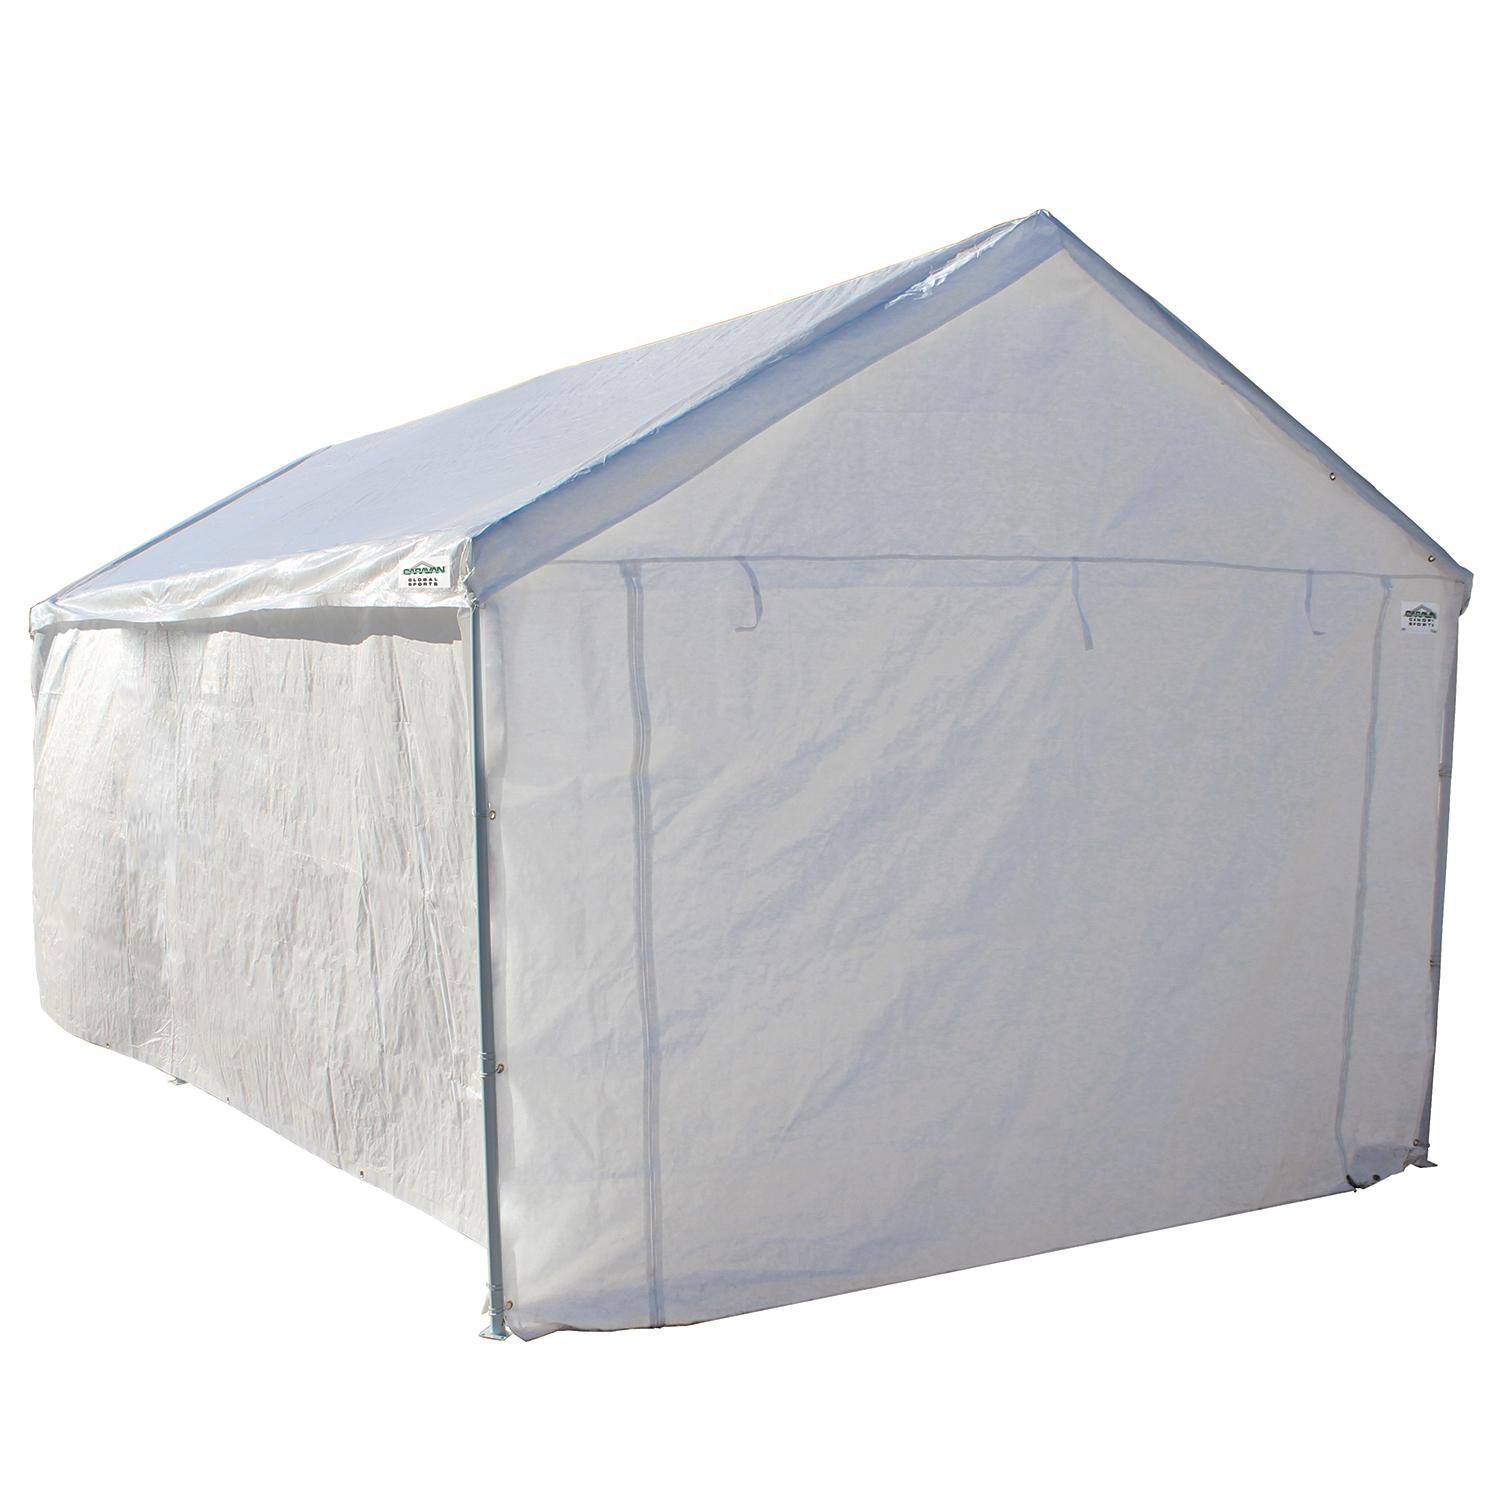 Portable Garage Side Wall Kit Tent Vehicle Car Canopy ...